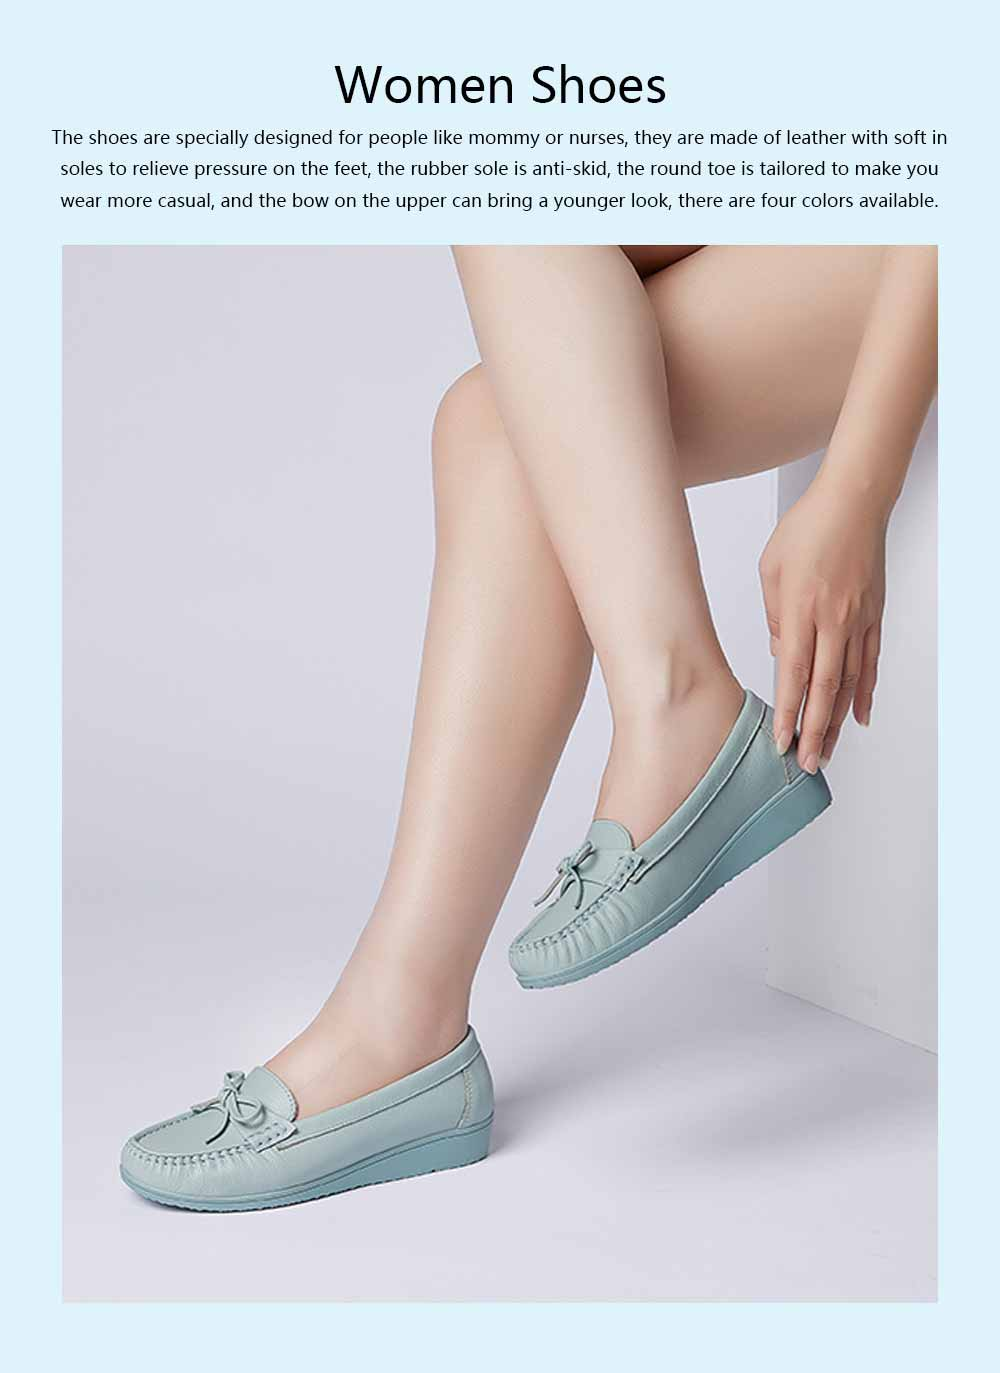 Sandal Leather PU Rubber Material, Flat-heeled Abrasion-resistant Foot Steady Adjustable Shallow Shoes for Mommy Nurse 0